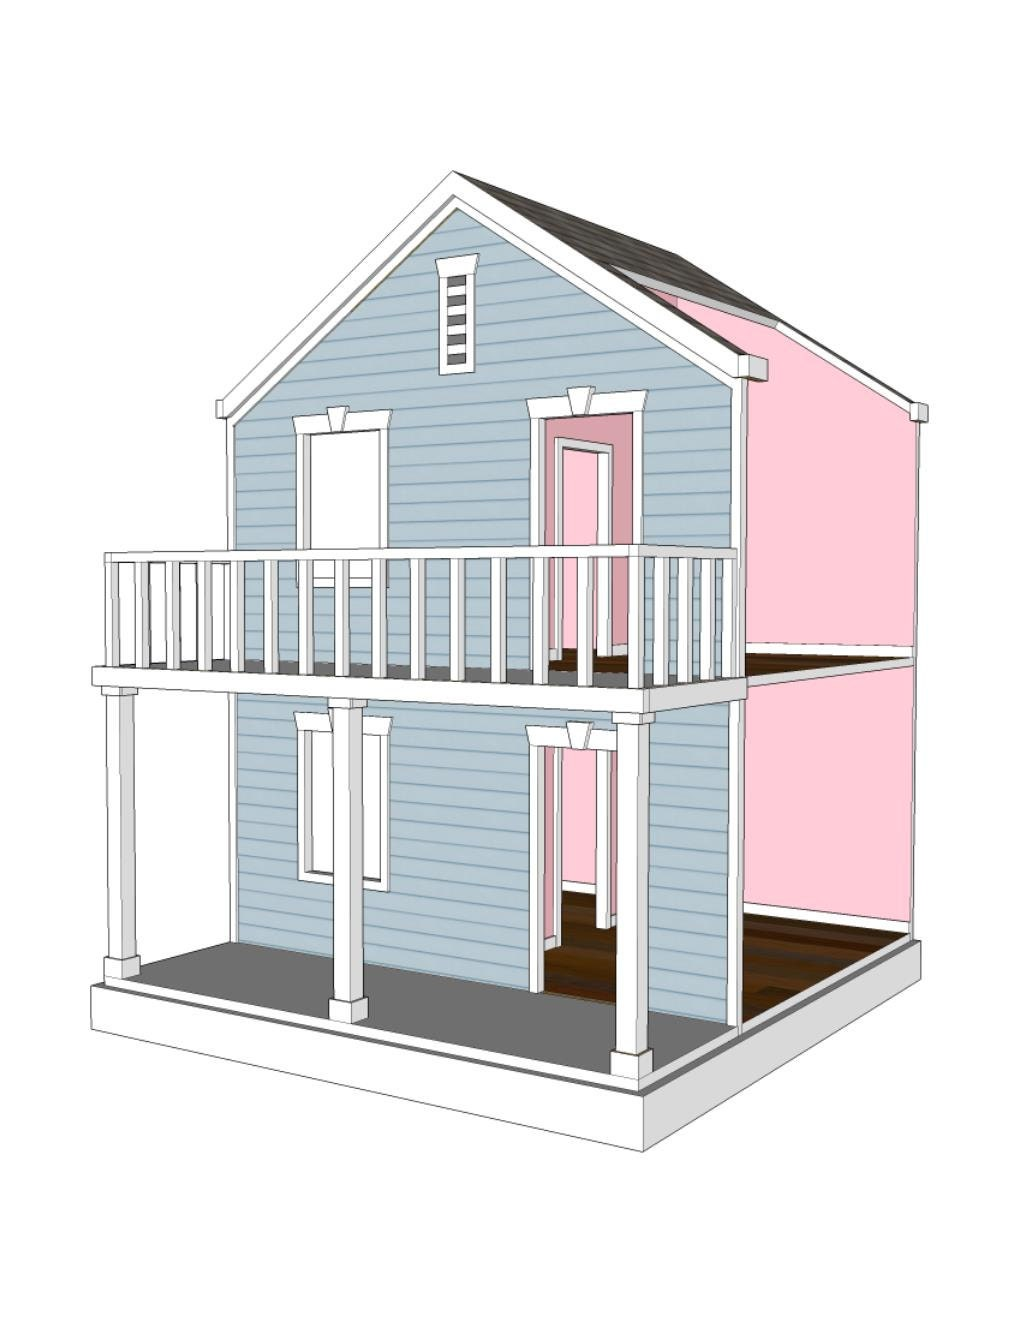 Doll house plans for american girl or 18 inch dolls 4 room for Dollhouse building plans free